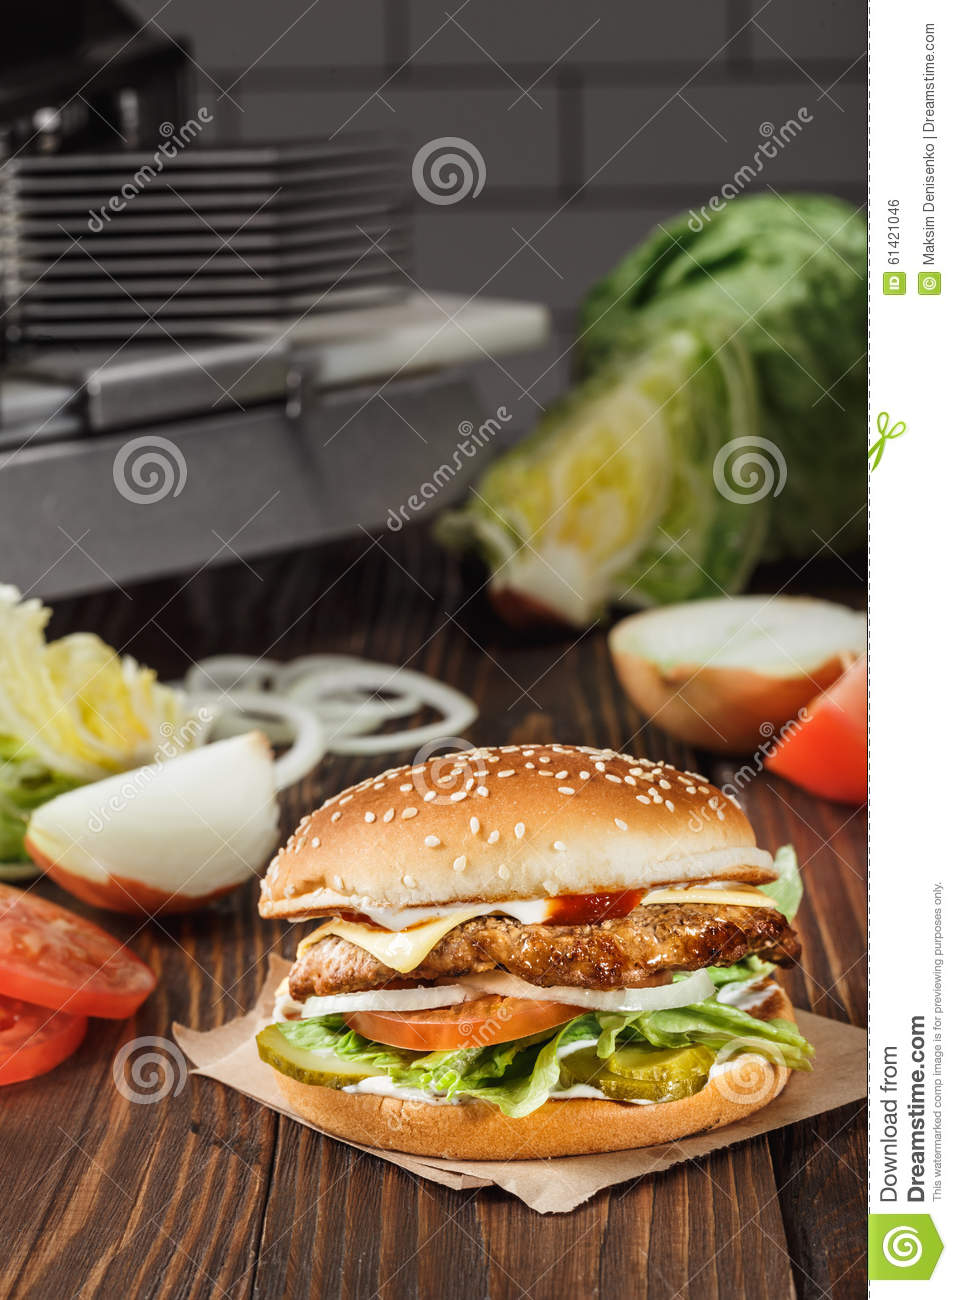 Cheese Burger With Grilled Meat, Cheese, Tomato, On Craft Paper Stock ...